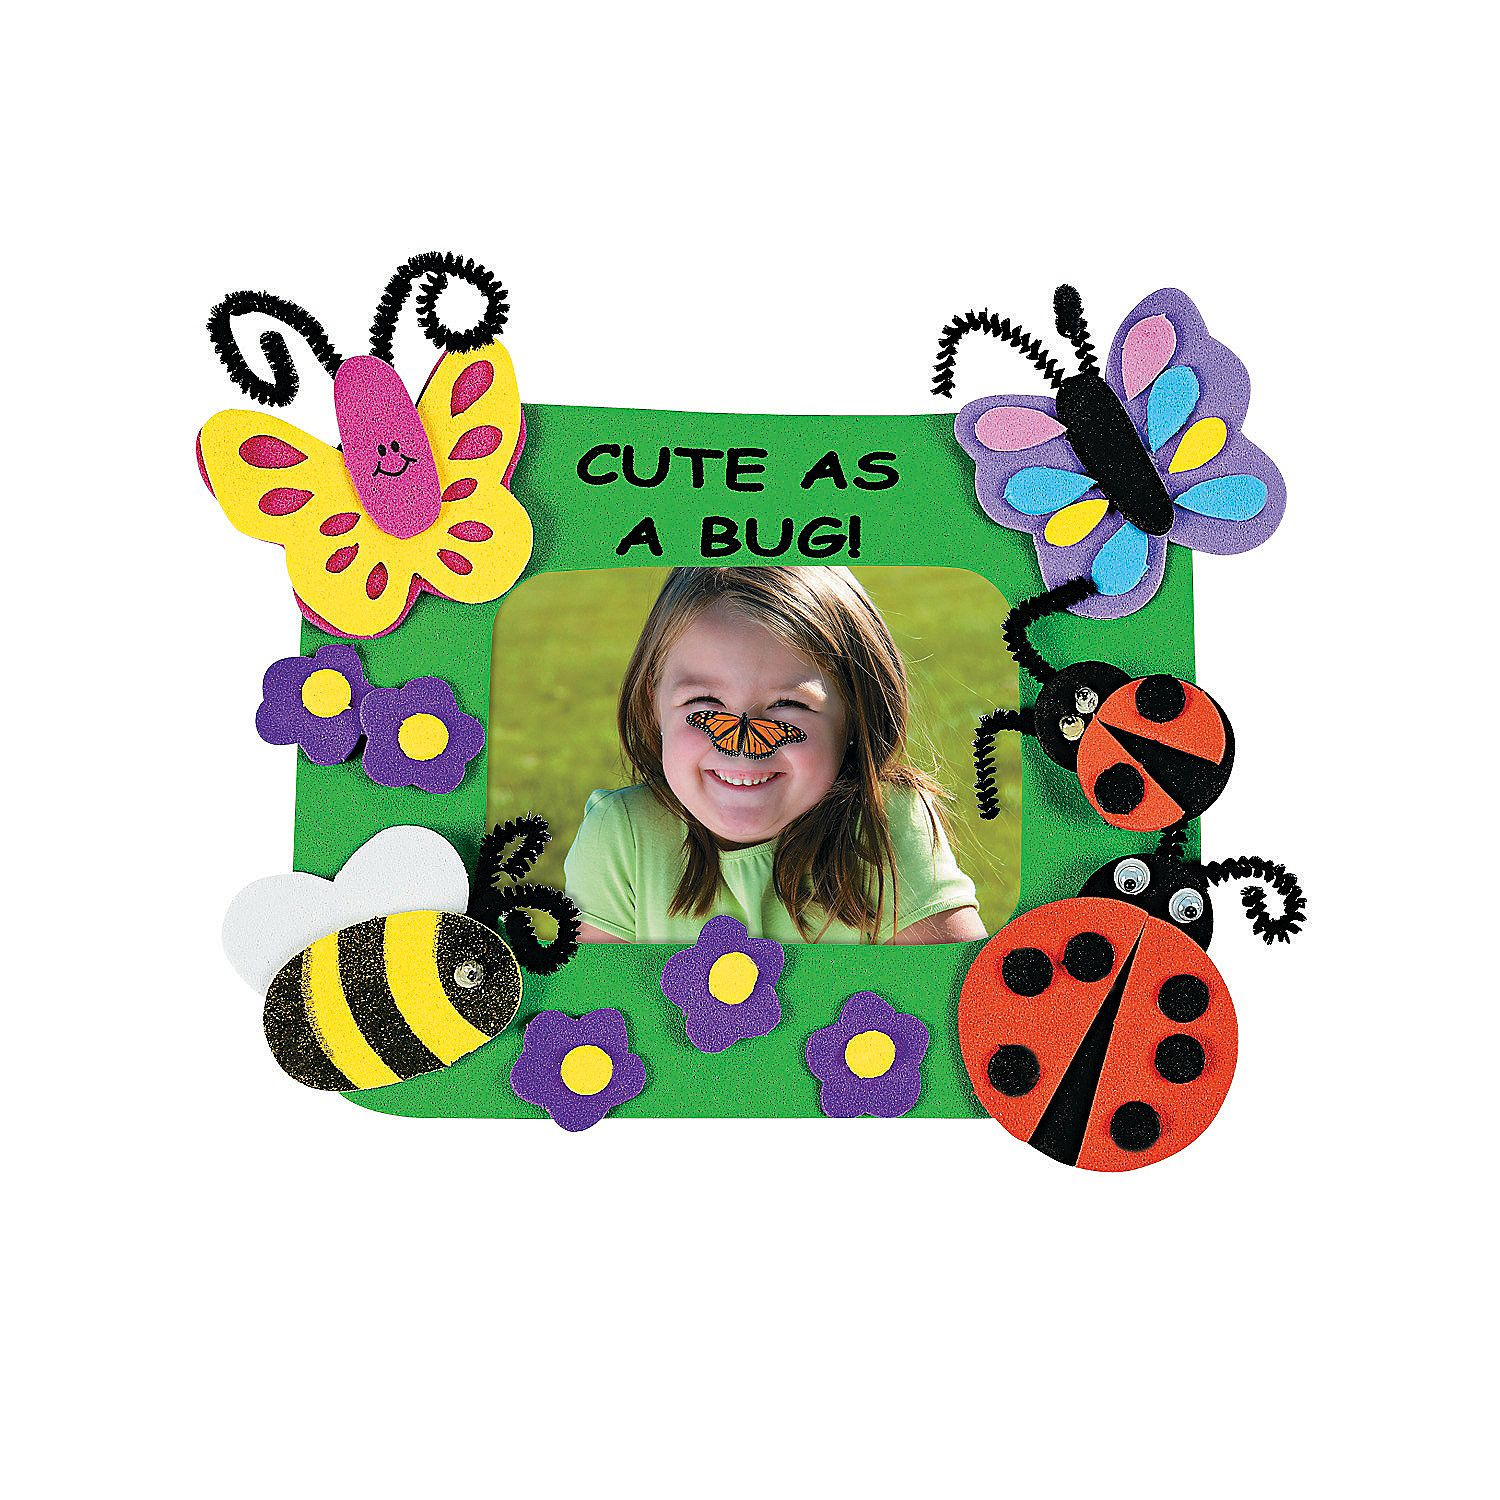 Cute as a bug picture frame magnet craft kit orientaltrading picture frame magnet craft kit orientaltrading jeuxipadfo Gallery